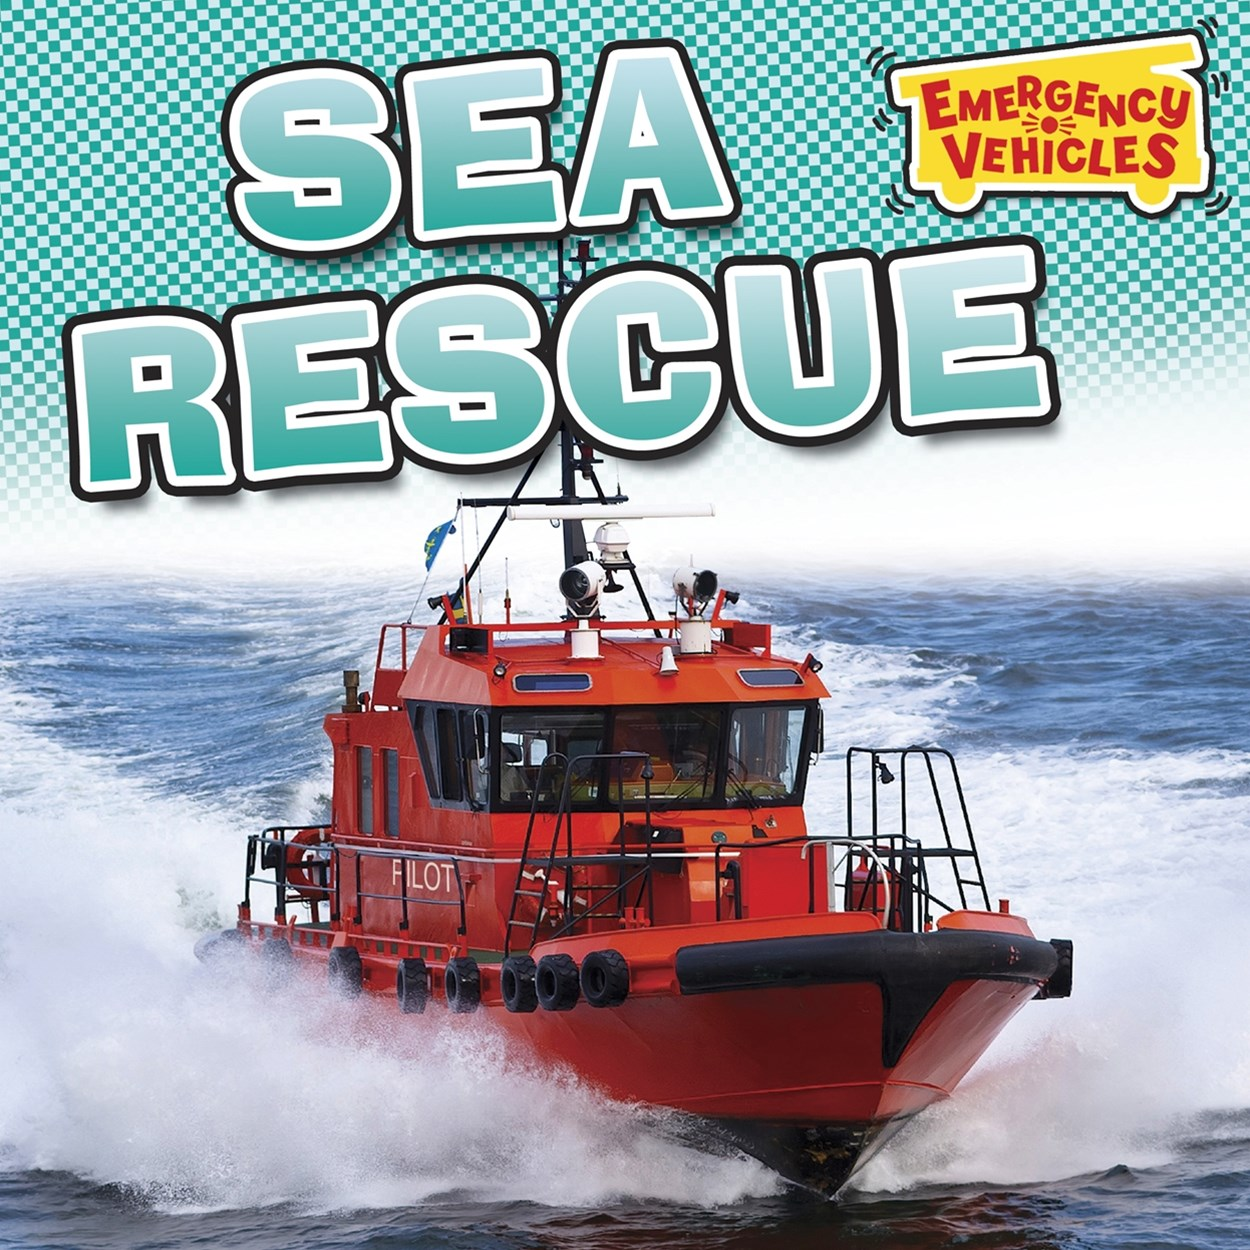 Emergency Vehicles: Sea Rescue